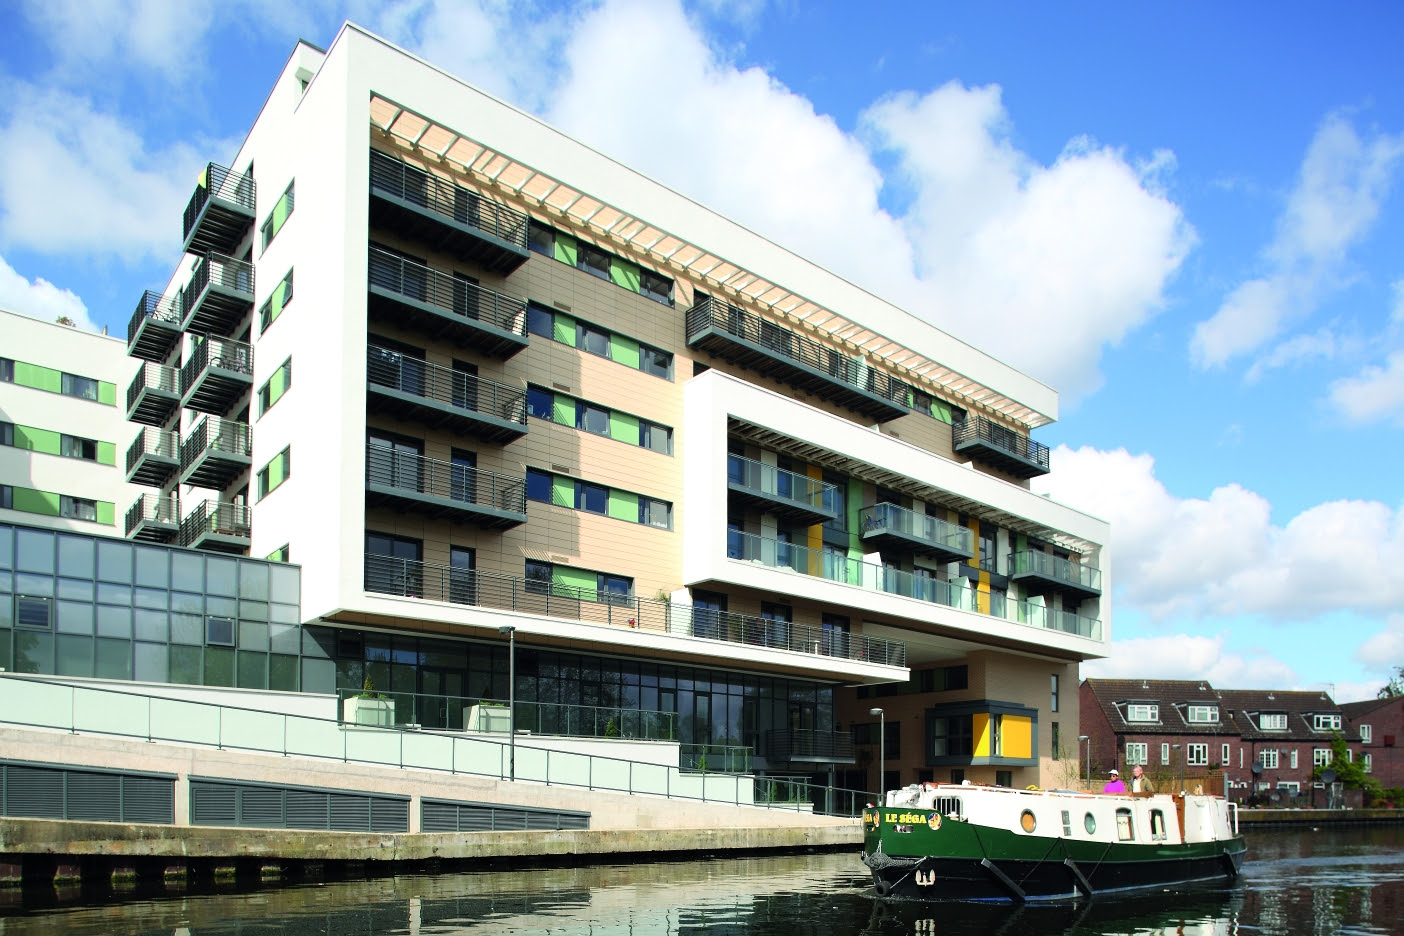 Matchmakers Wharf 3